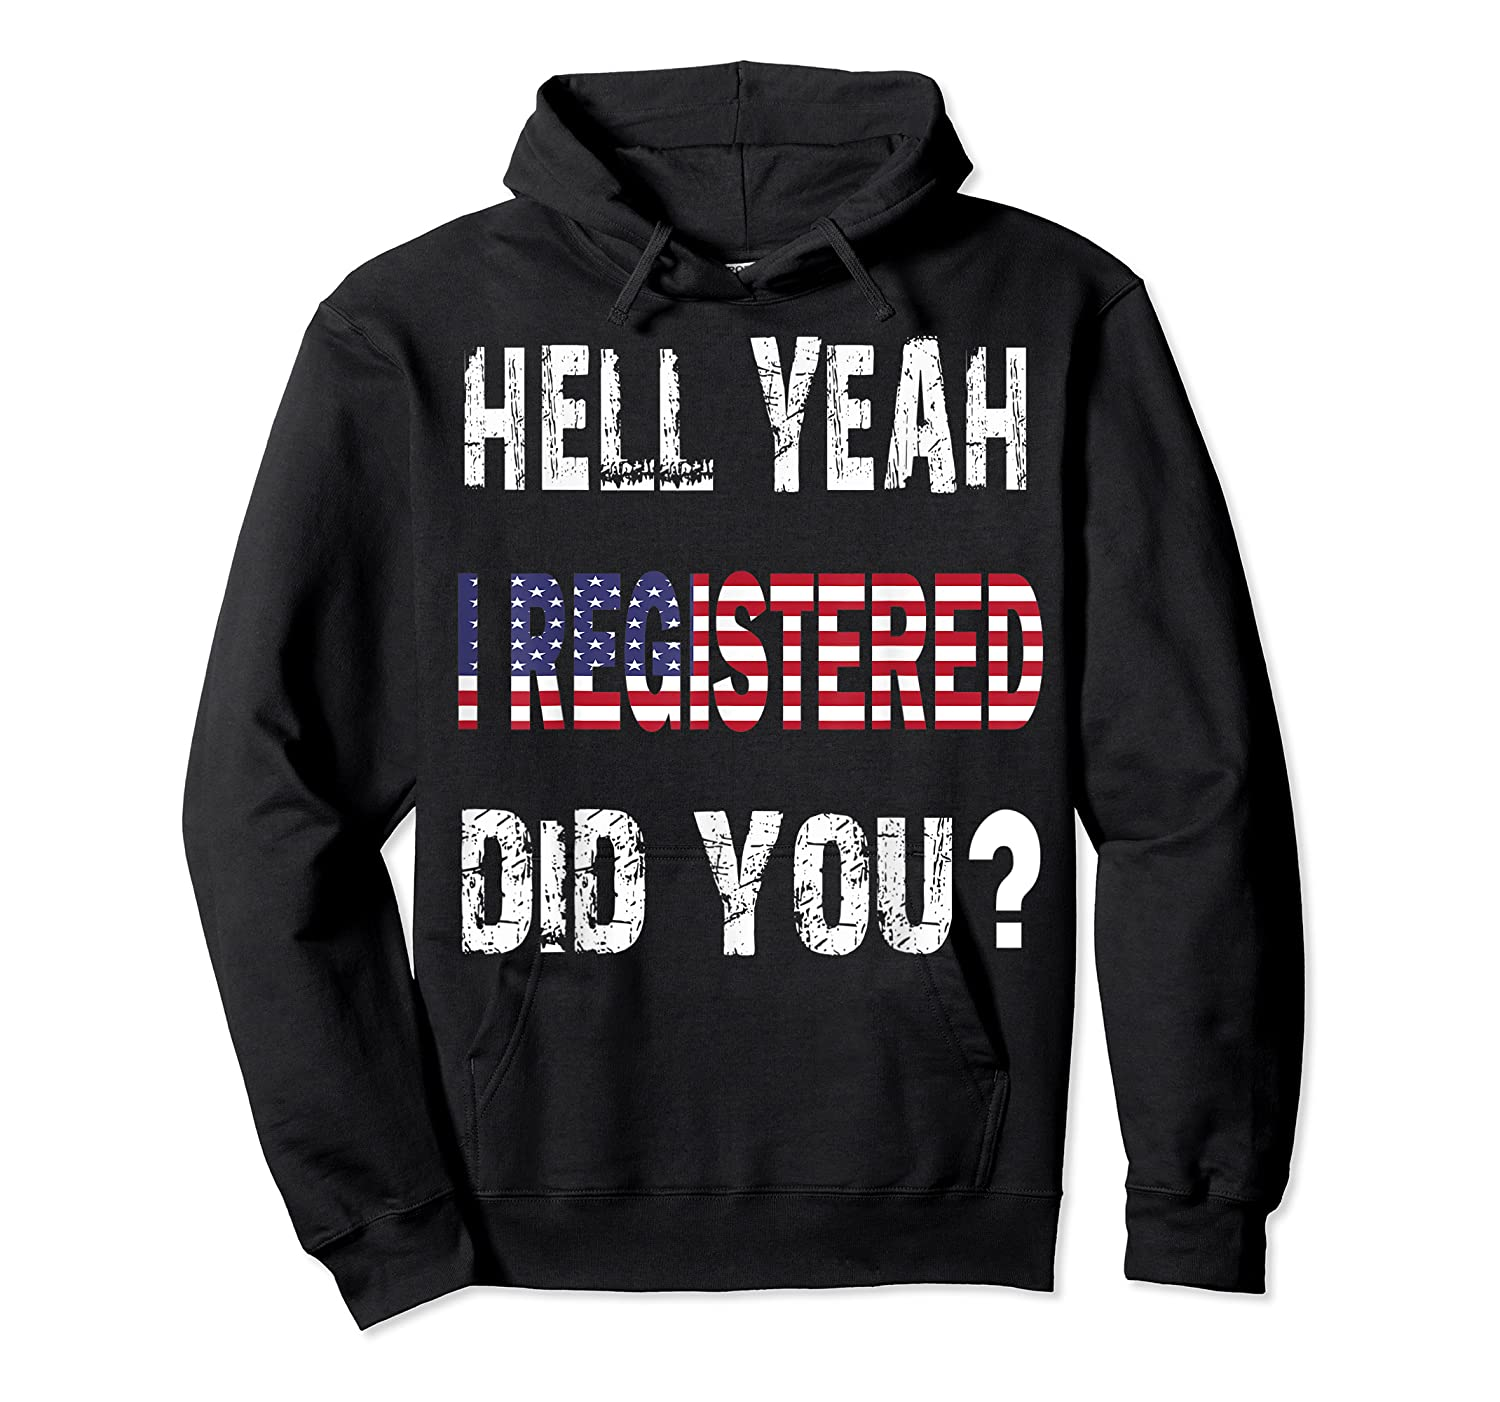 Registration Day Register To Vote Us Election Gift T Shirt Unisex Pullover Hoodie